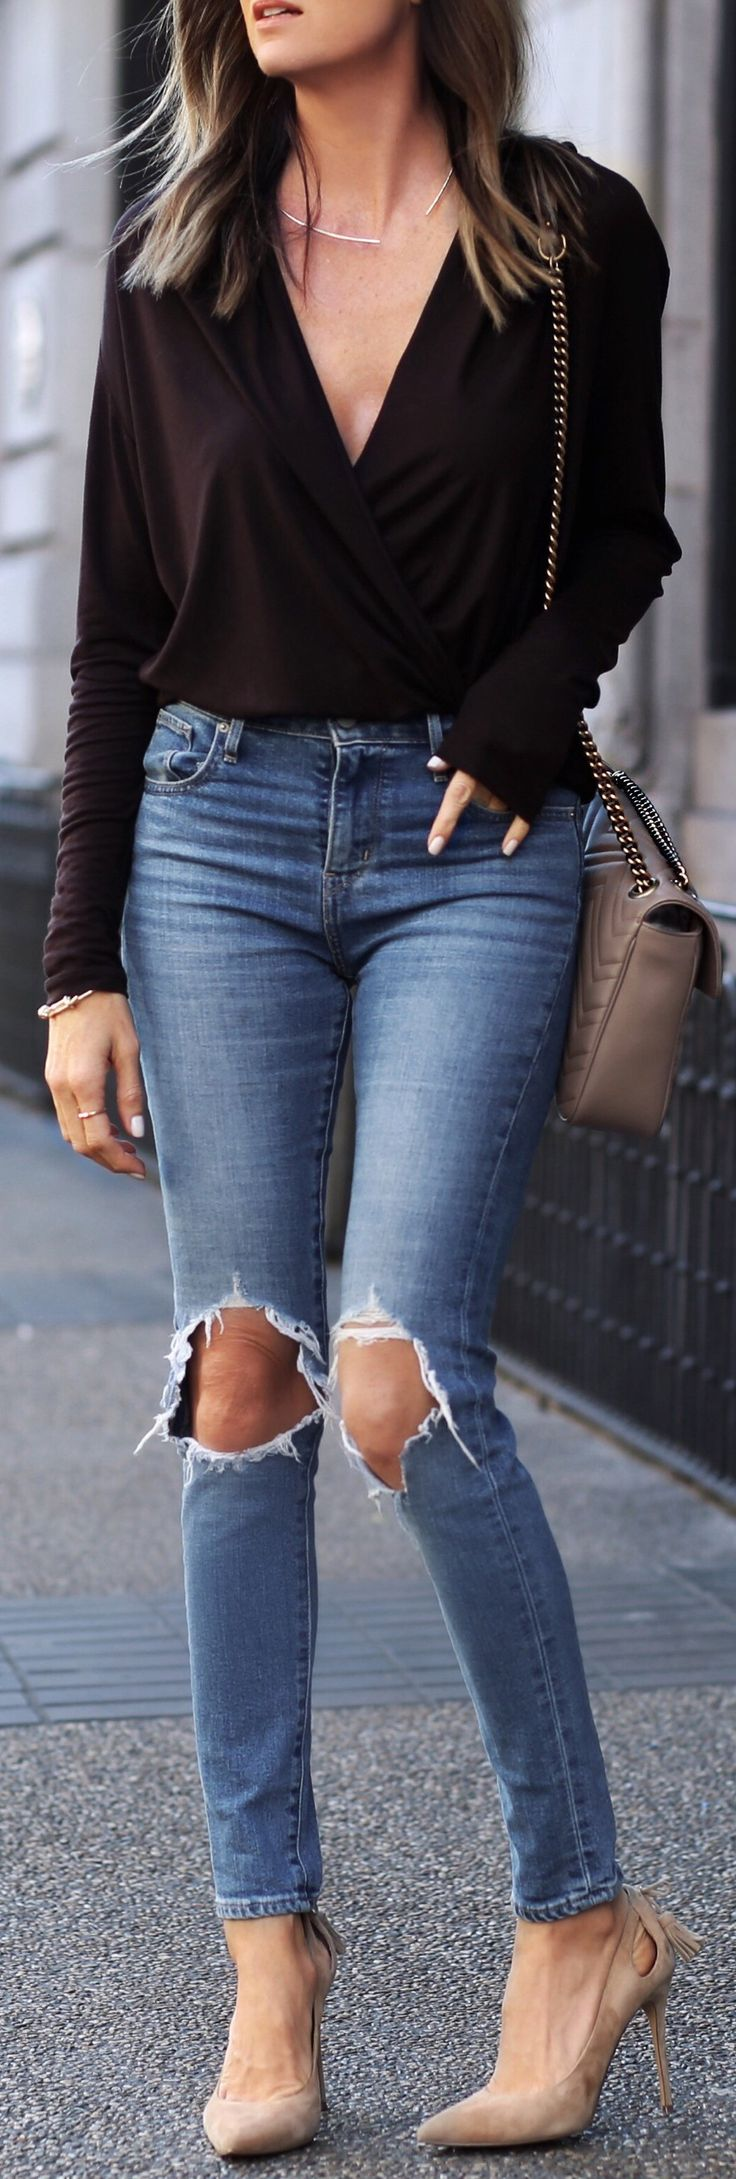 Black Blouse / Destroyed Skinny Jeans / Beige Pumps